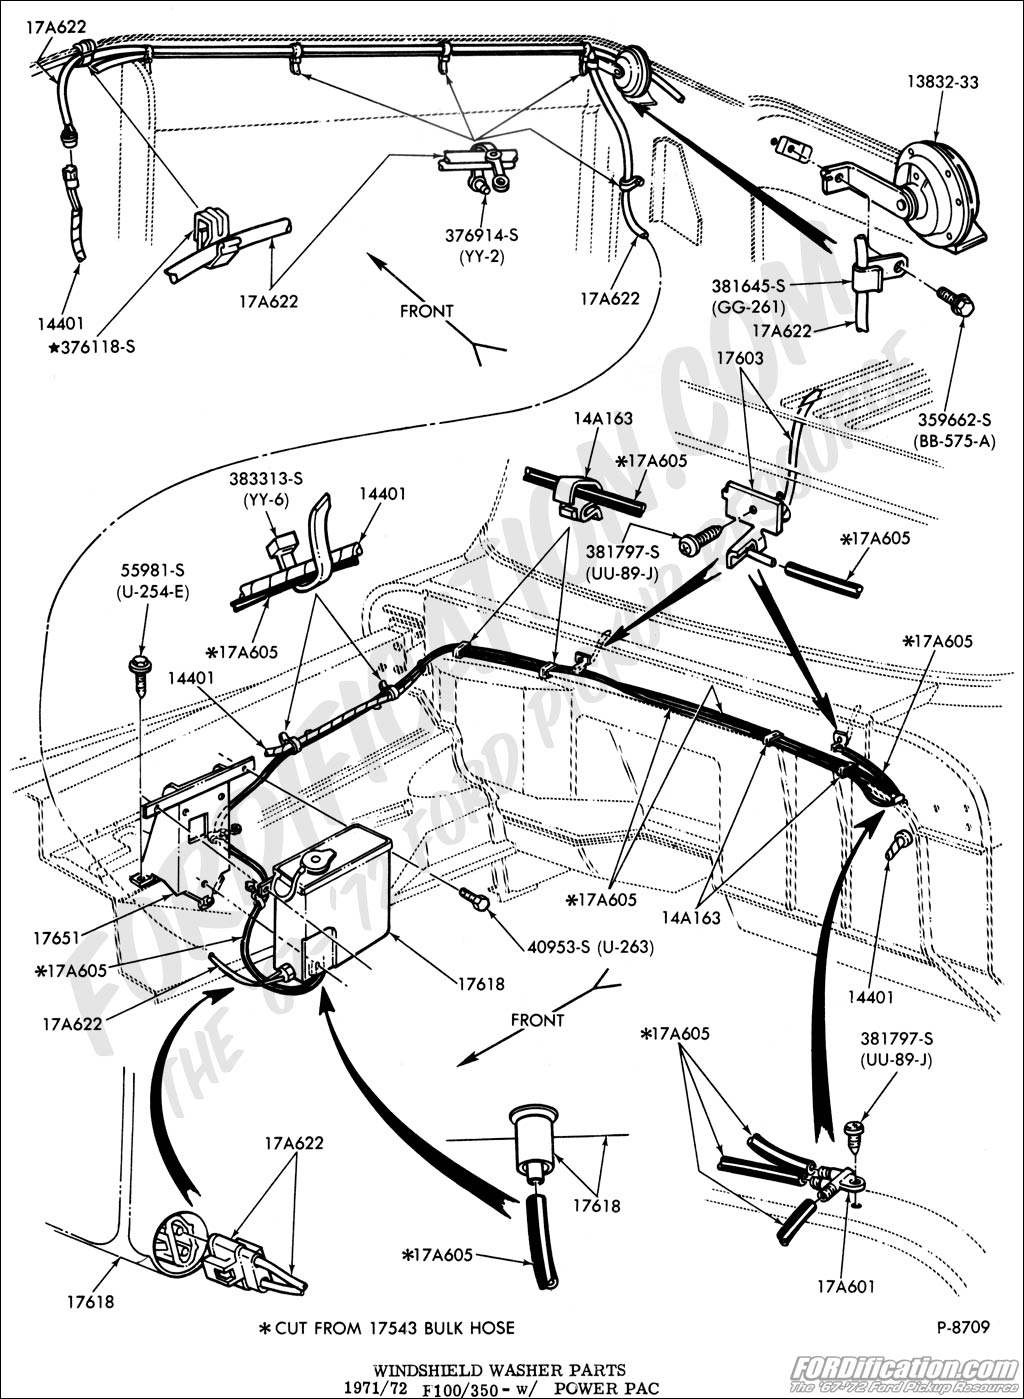 Ford Truck Drawing At Free For Personal Use 1965 Wiring Diagram 1024x1399 Technical Drawings And Schematics